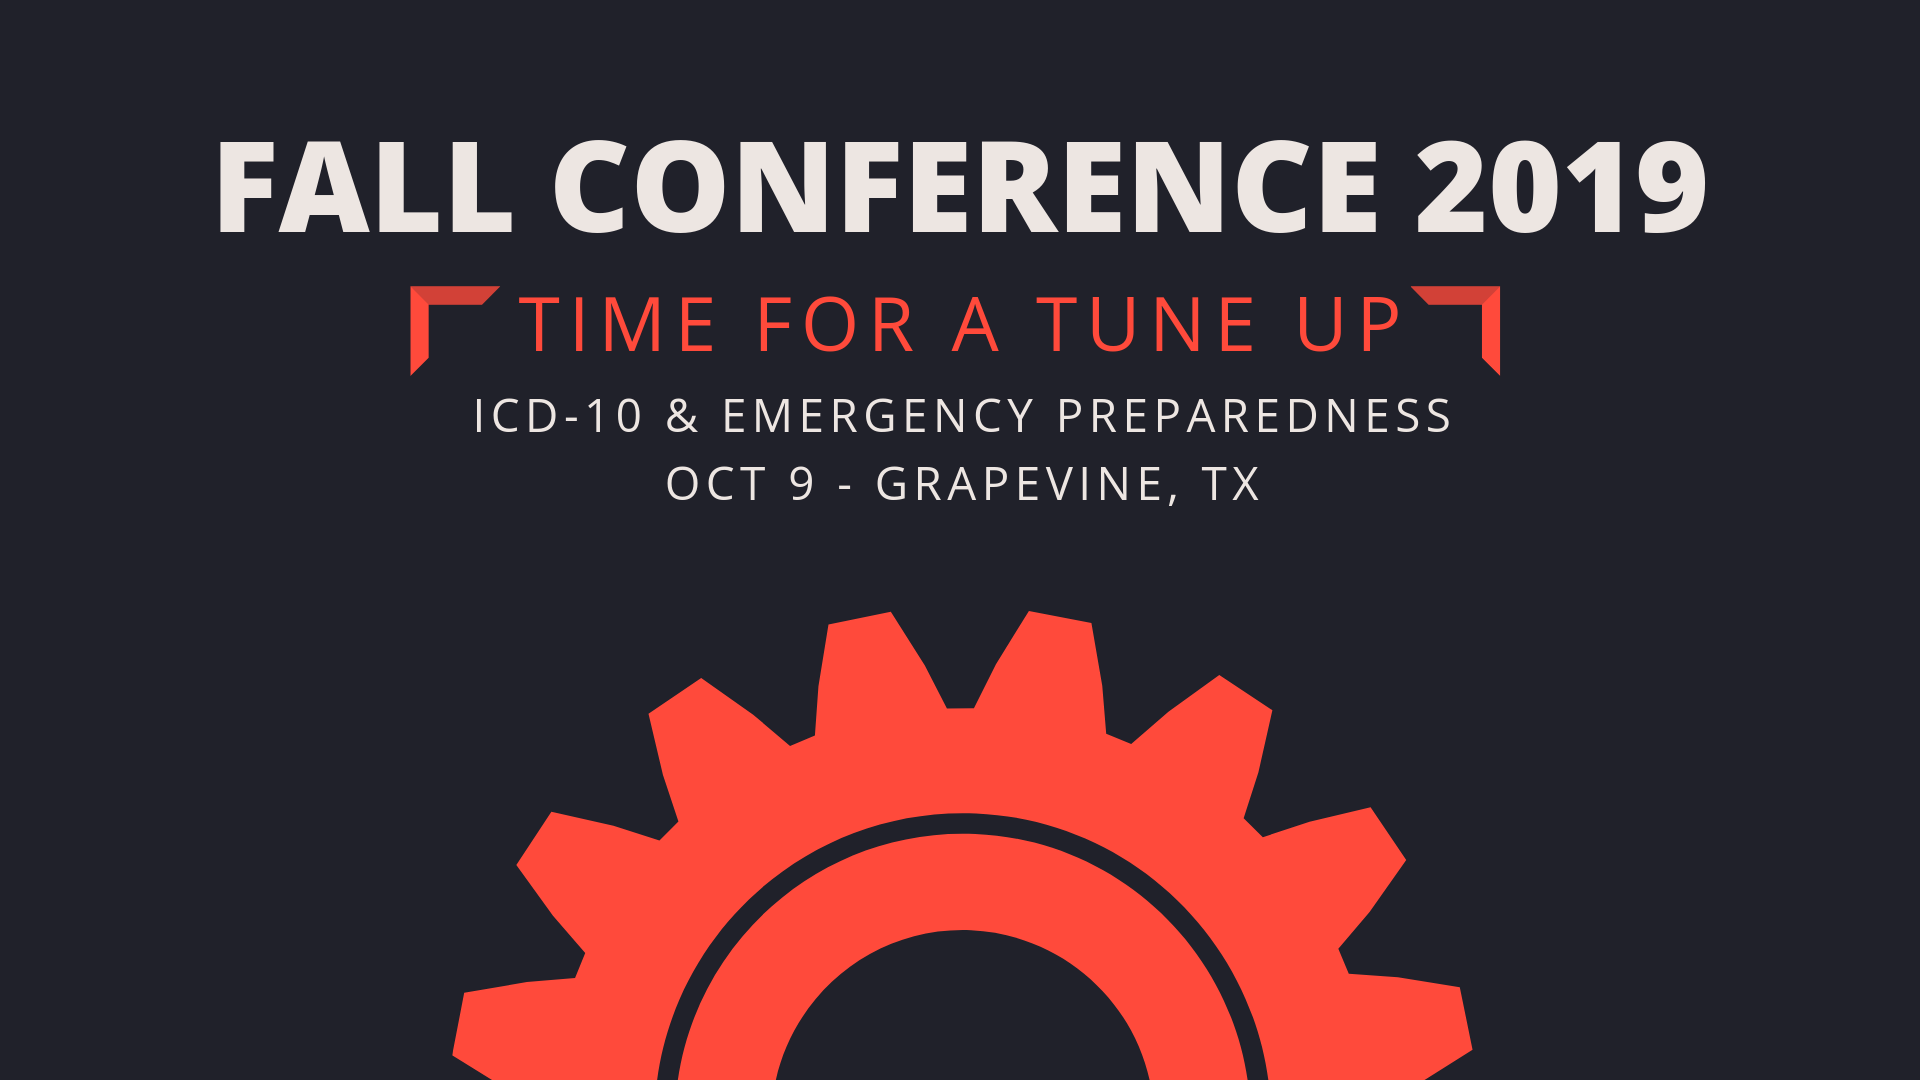 Fall Conference - TAHCH org